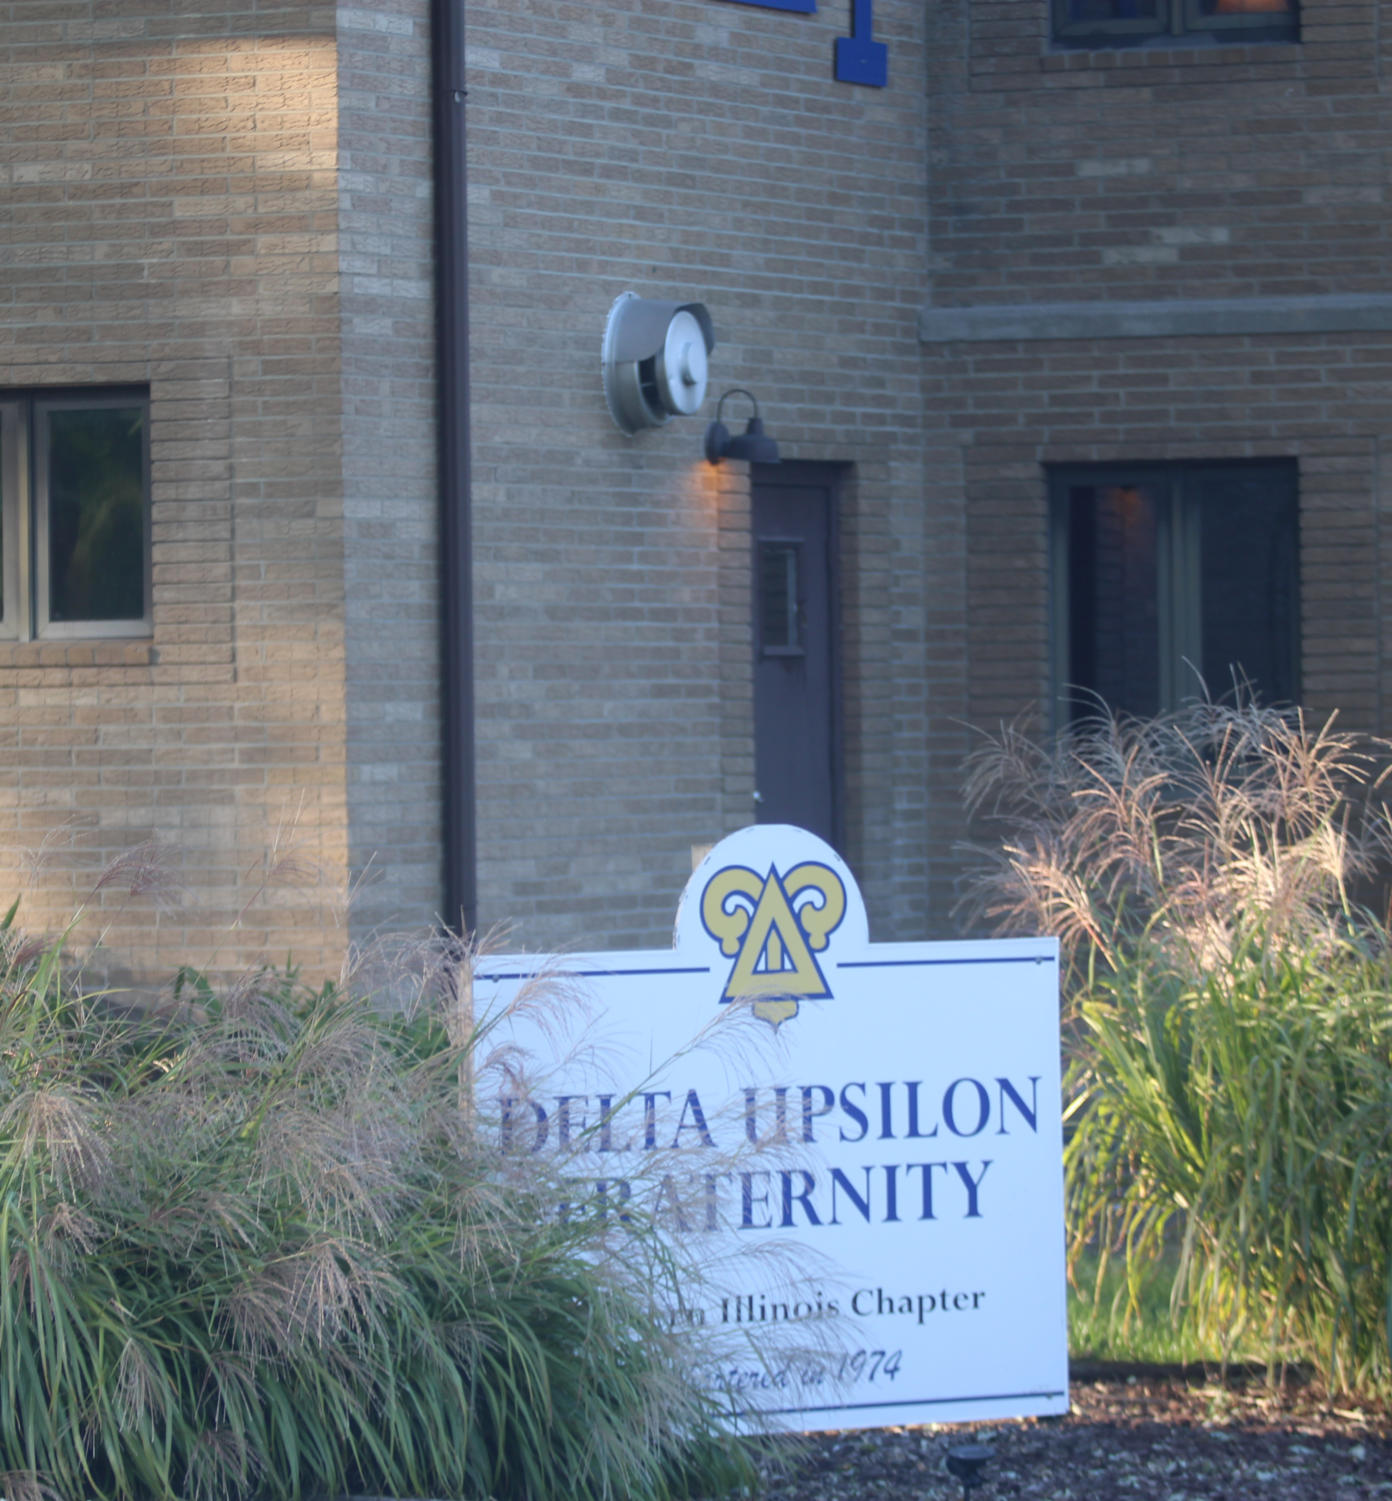 Delta Upsilon fraternity will be hosting their haunted house and haunted trail starting Saturday.